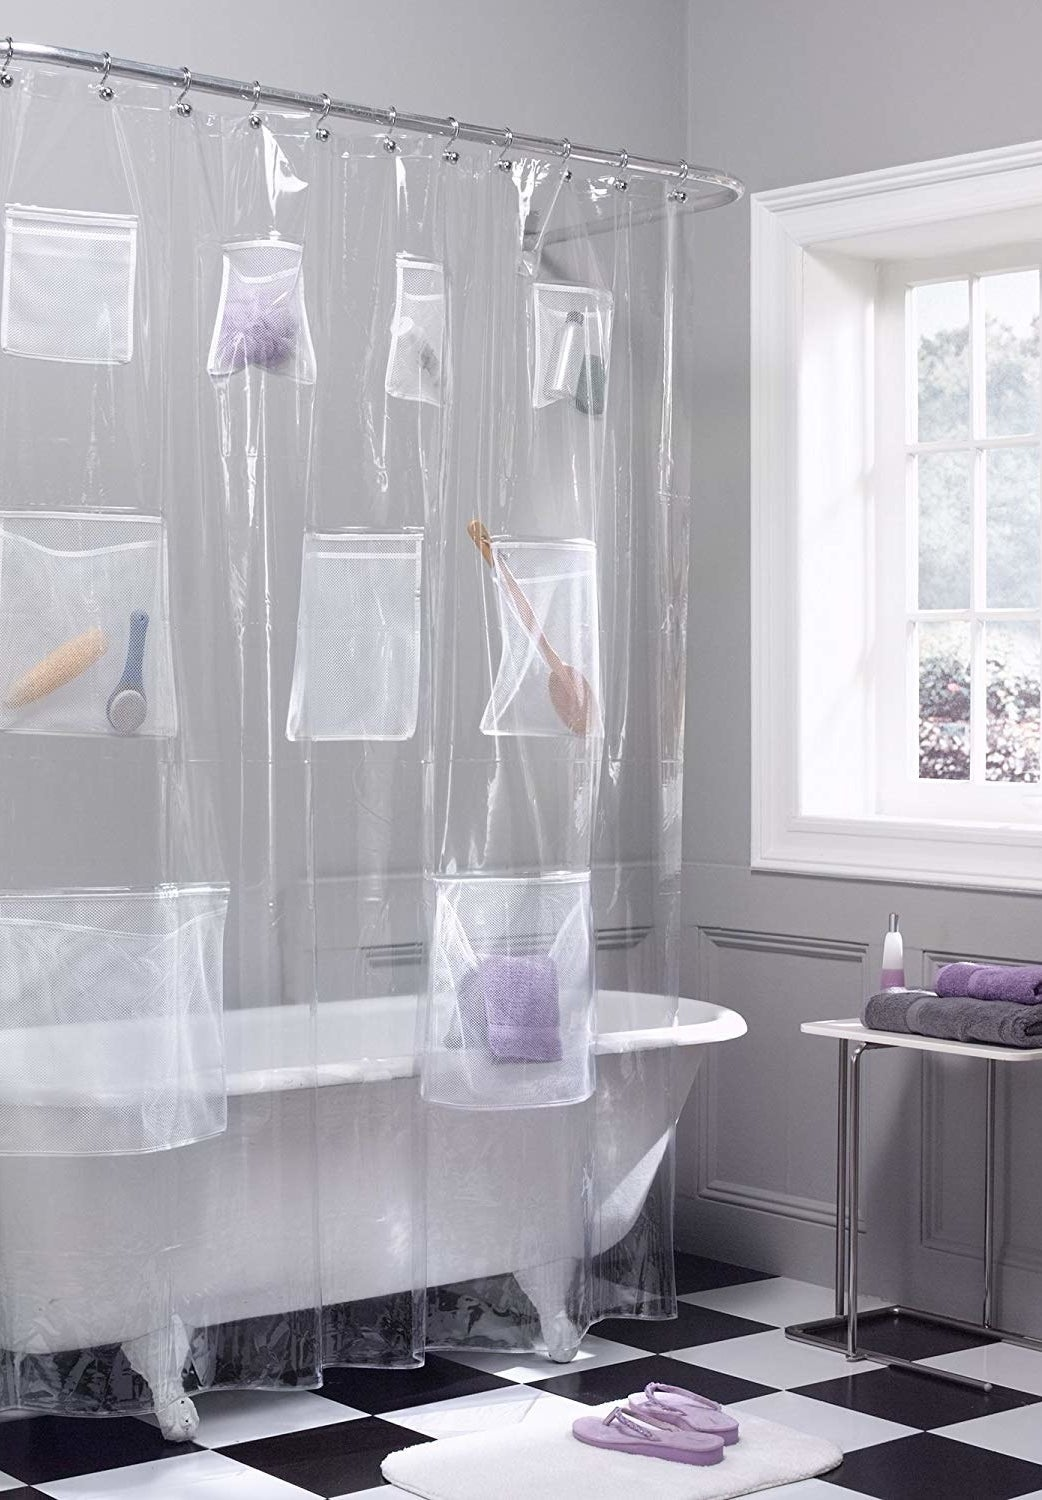 The clear shower liner with items in most pockets